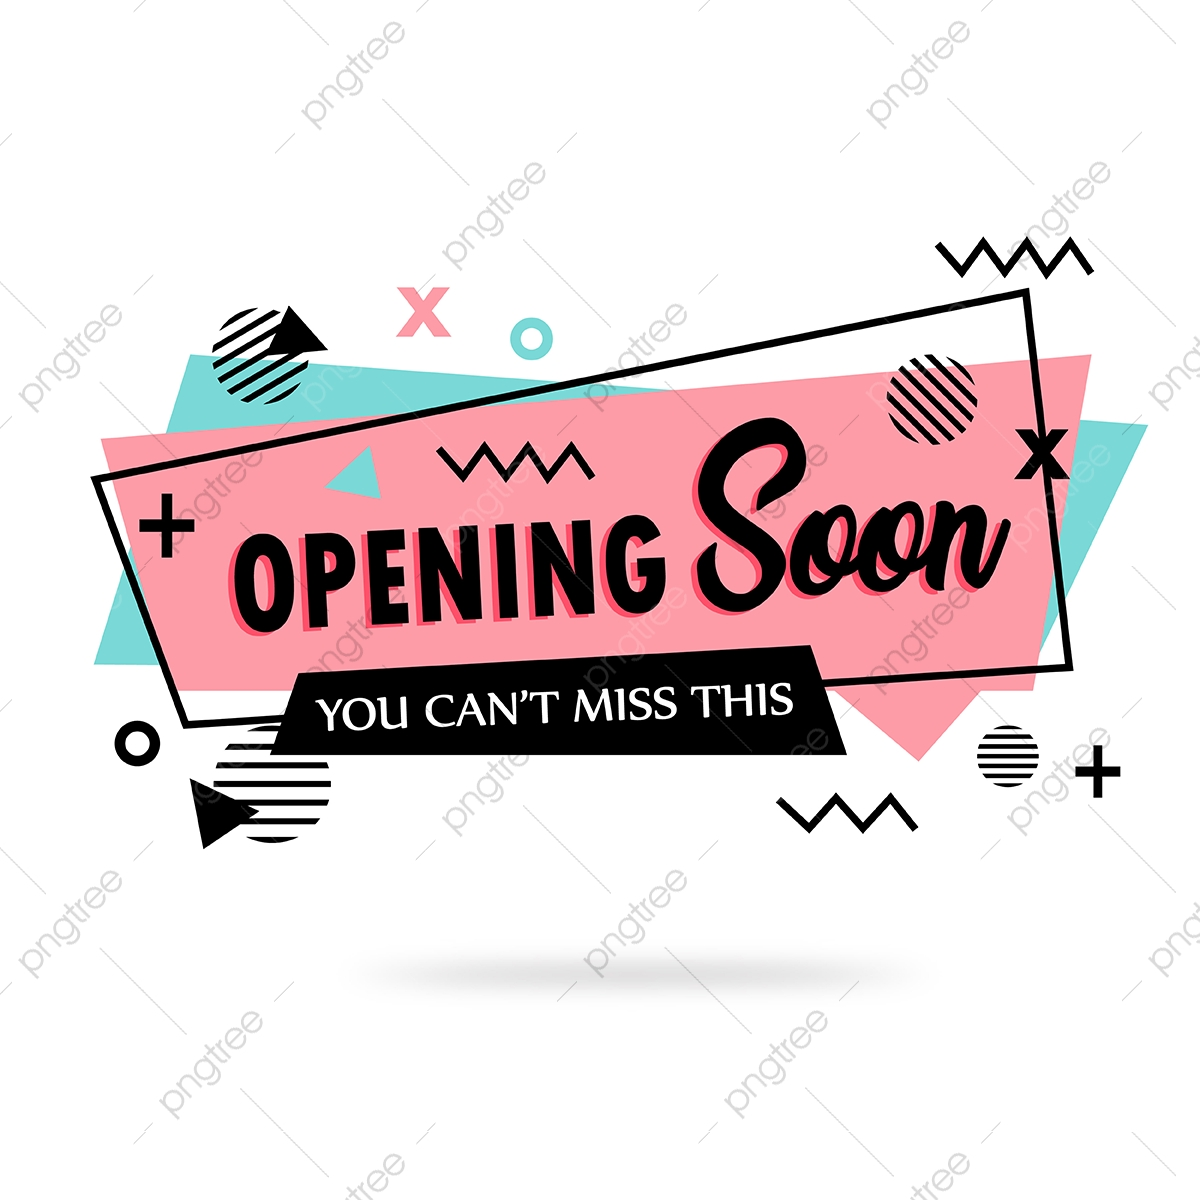 Opening Soon Banner Background Backdrop Banner Png And Vector With Transparent Background For Free Download